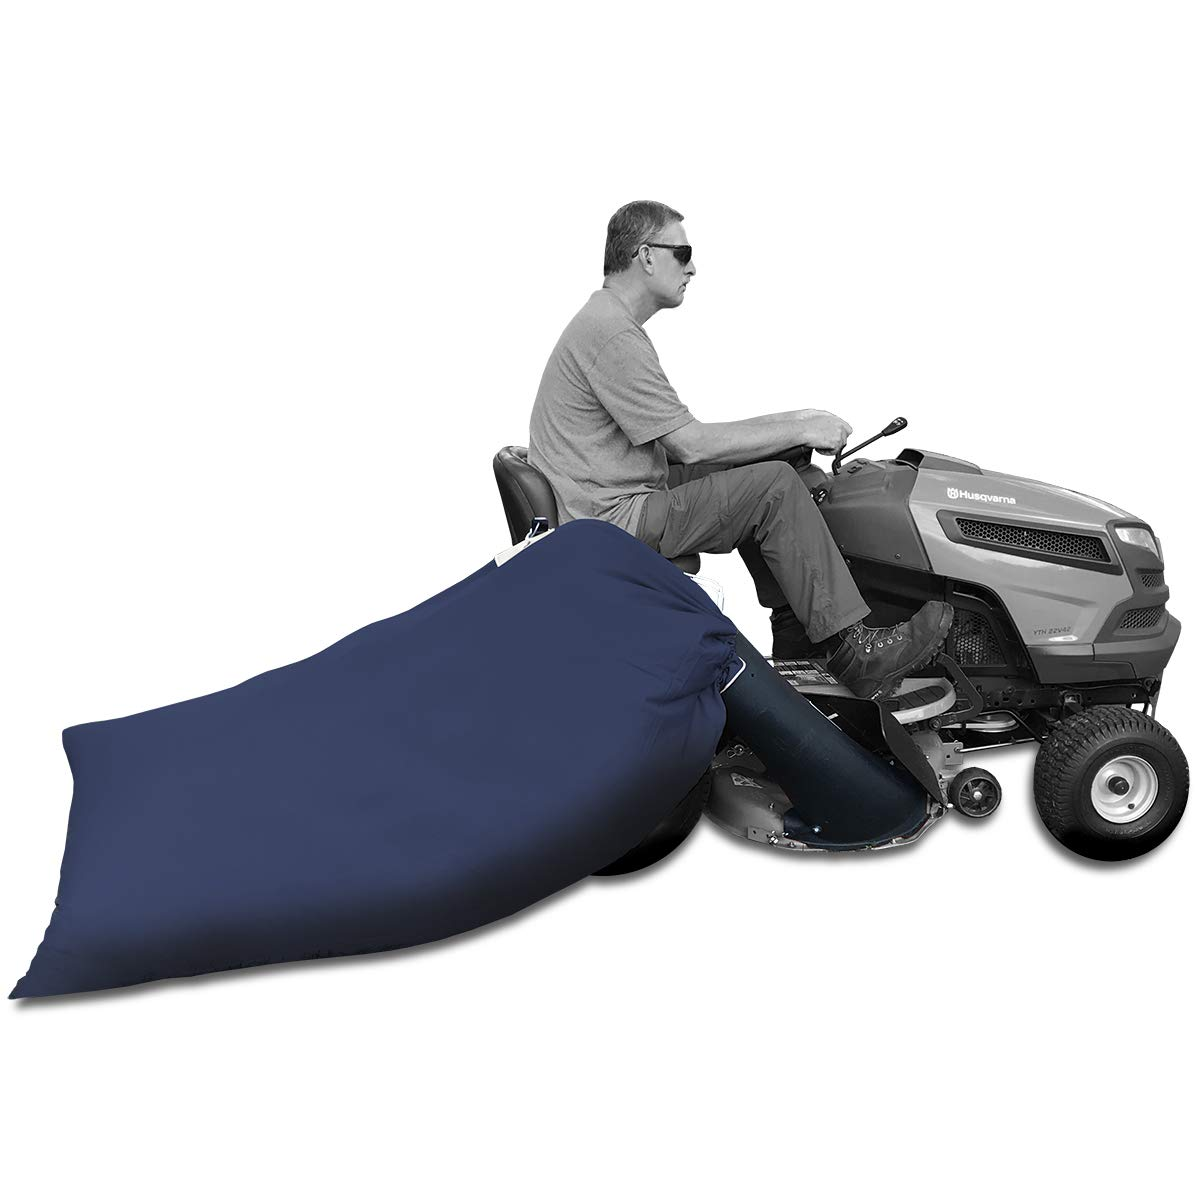 Lawn Tractor Leaf Bag - 90 gal. Bag with Chute Kit for Husqvarna/Poulan/Dixon Lawn Tractors with 42-in. Decks [LTLB95001]